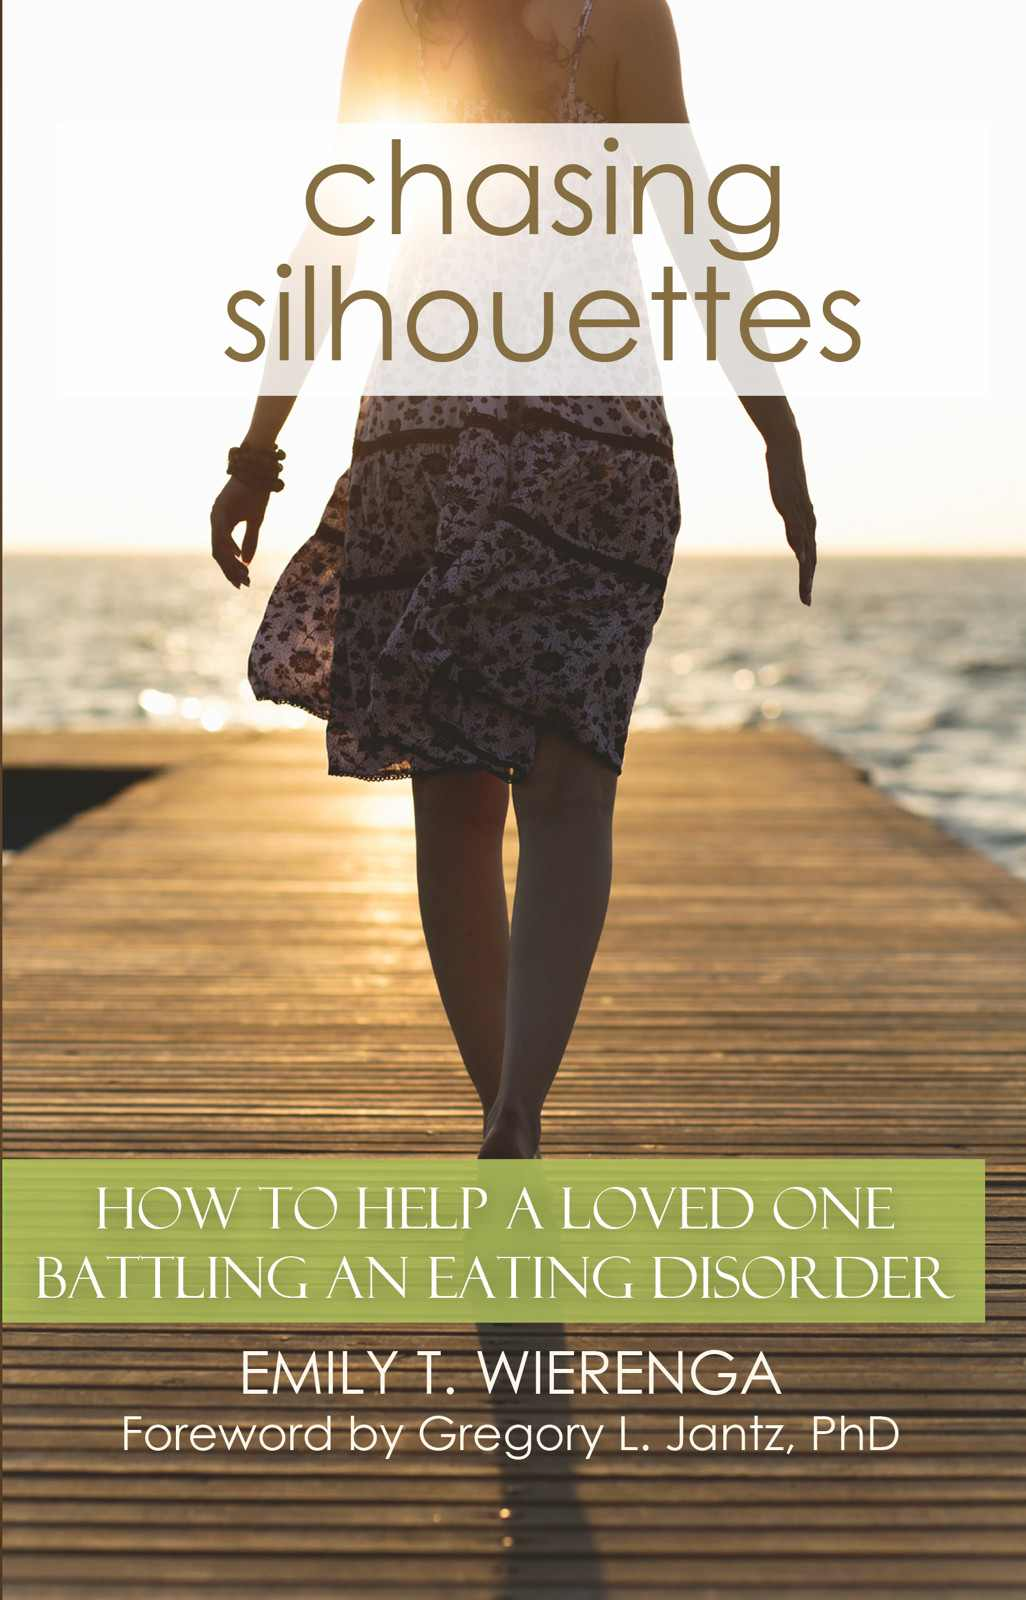 Book cover of Chasing Silhouettes